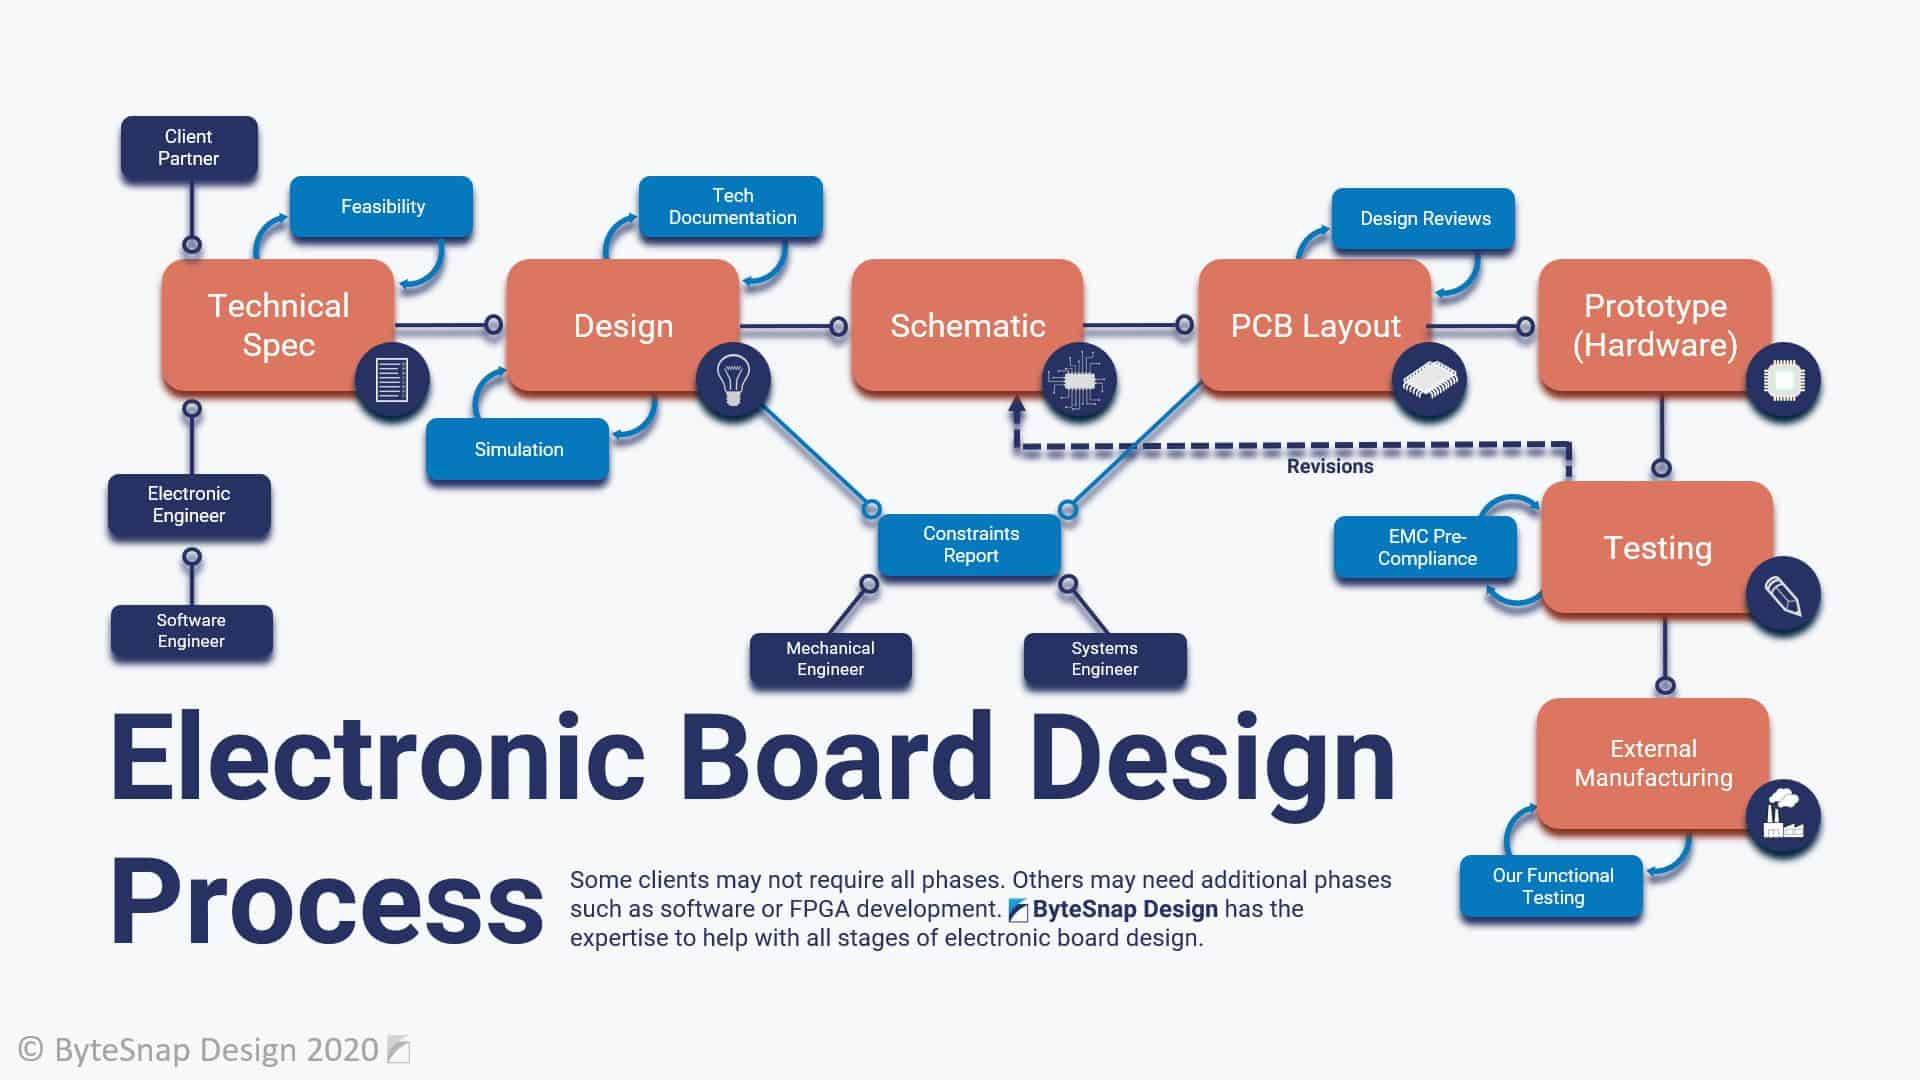 Electronic Board Design Process Flowchart for Embedded Electronics